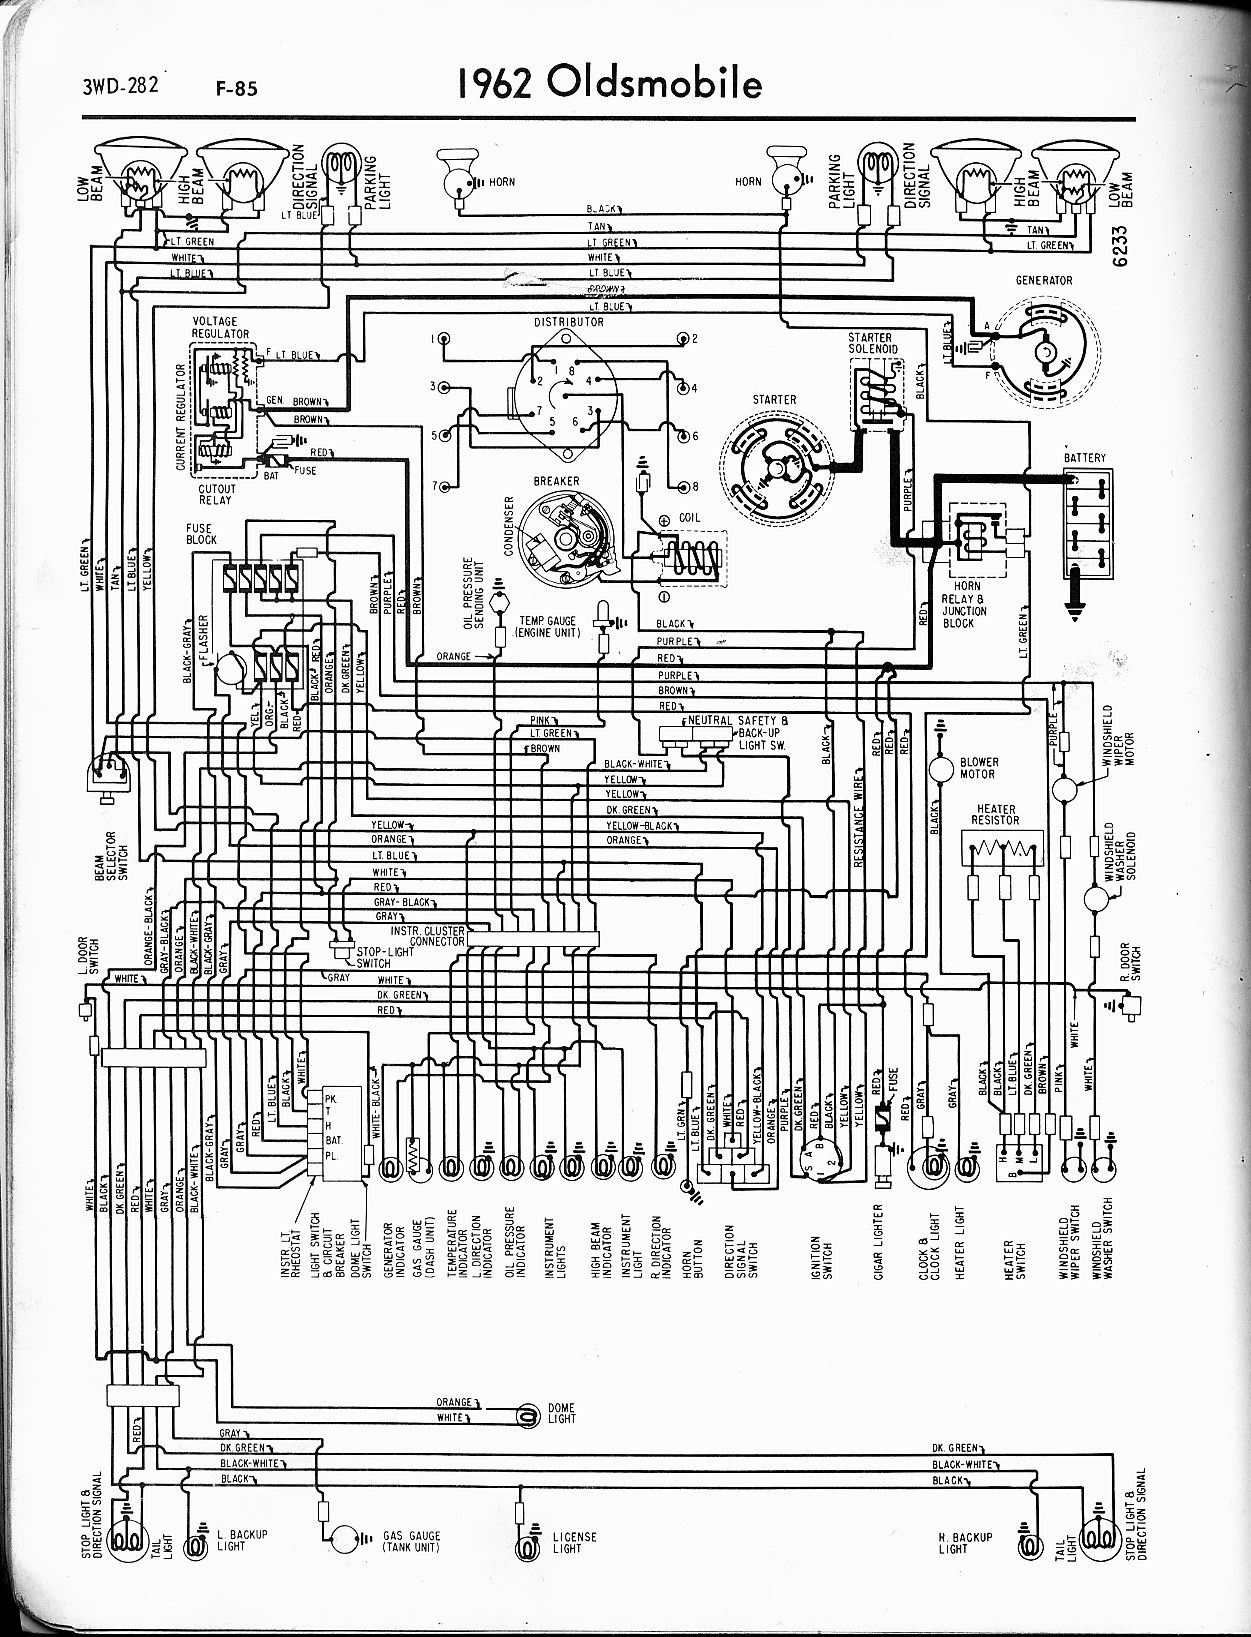 heater wiring diagram for 98 oldsmobile | wiring library 1994 buick lesabre horn wiring diagram #15